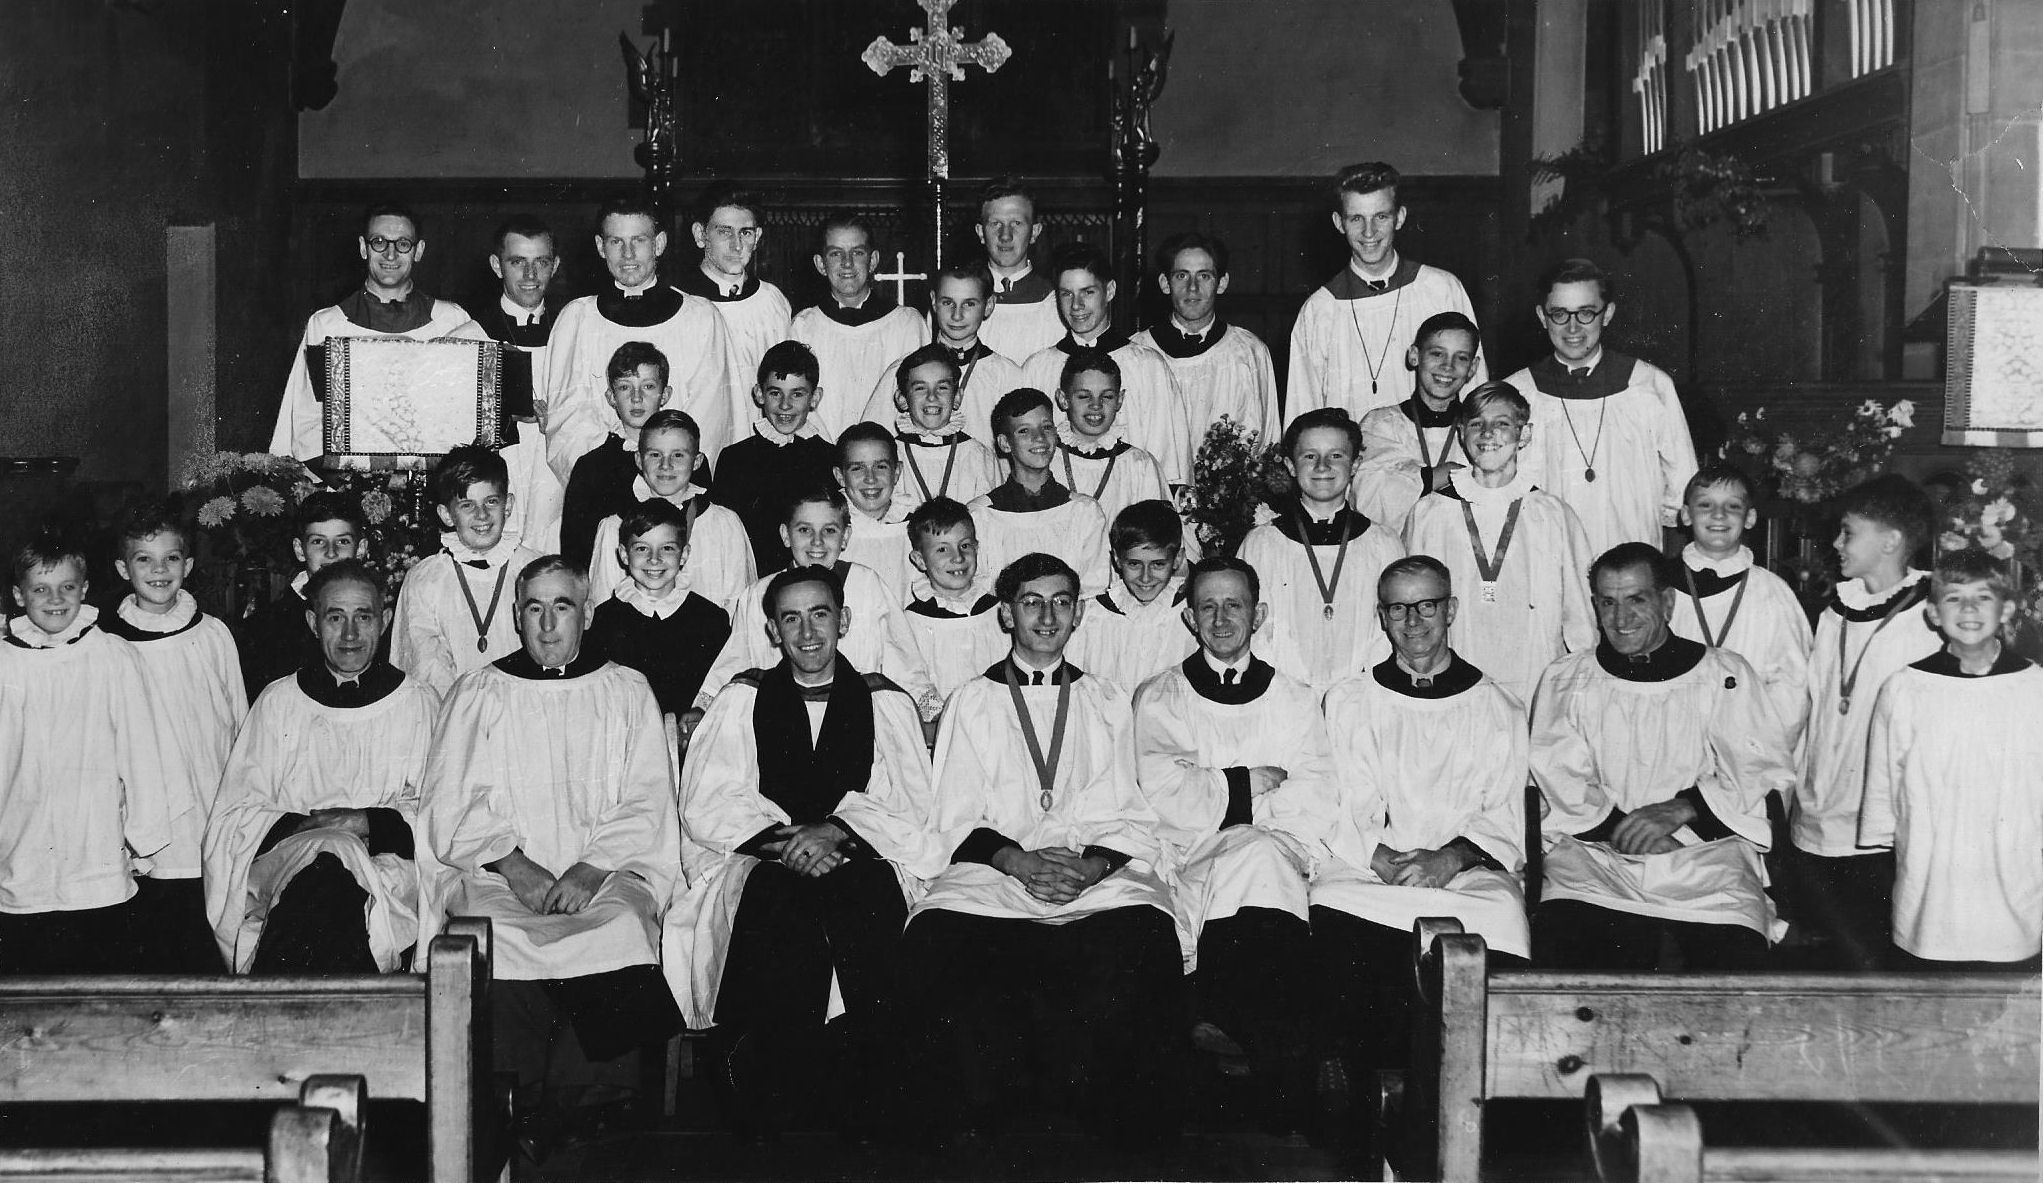 St Johns Church Choir Photographs